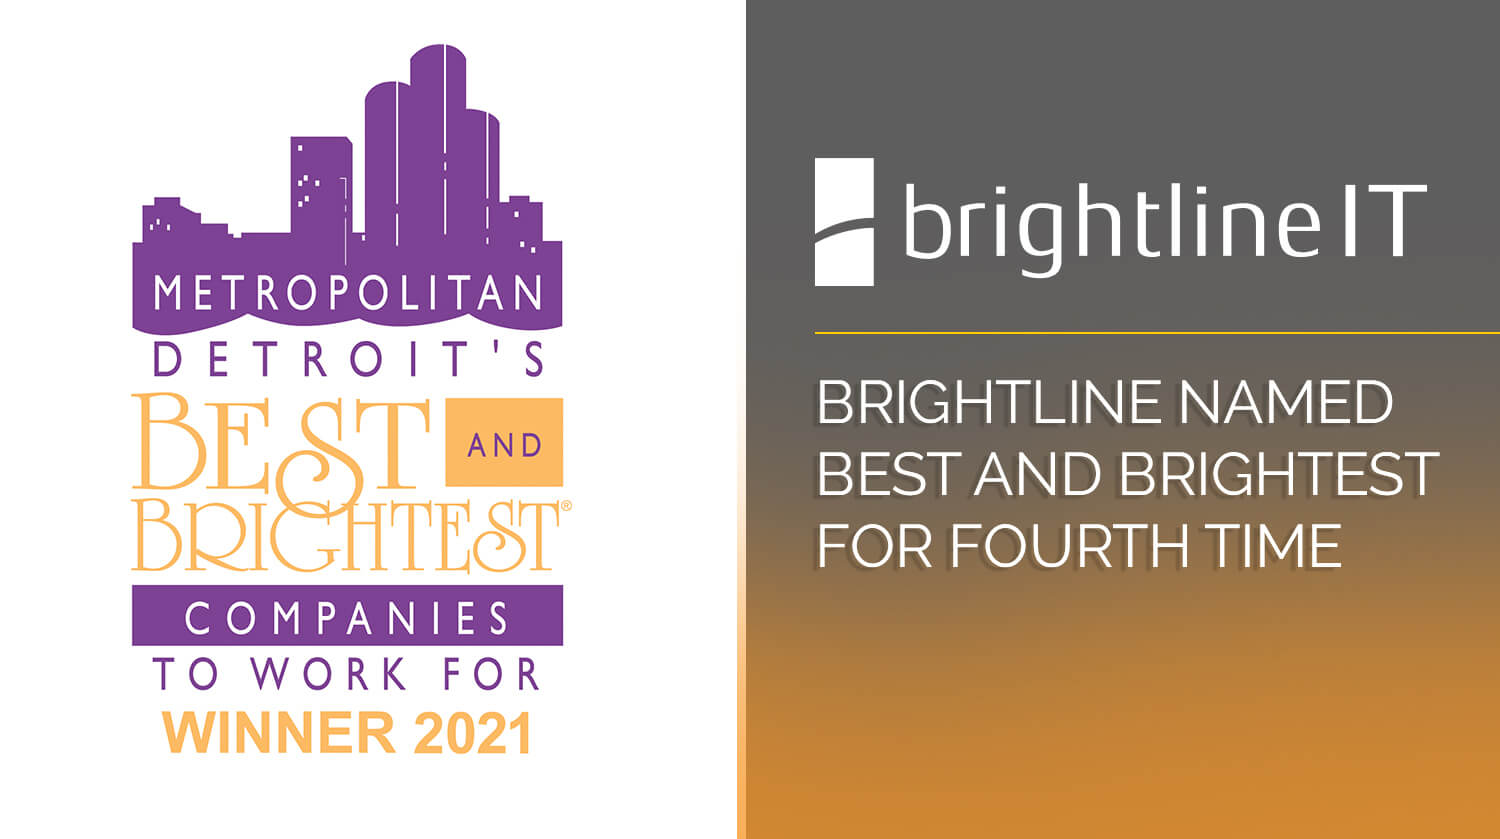 Brightline named best and brightest